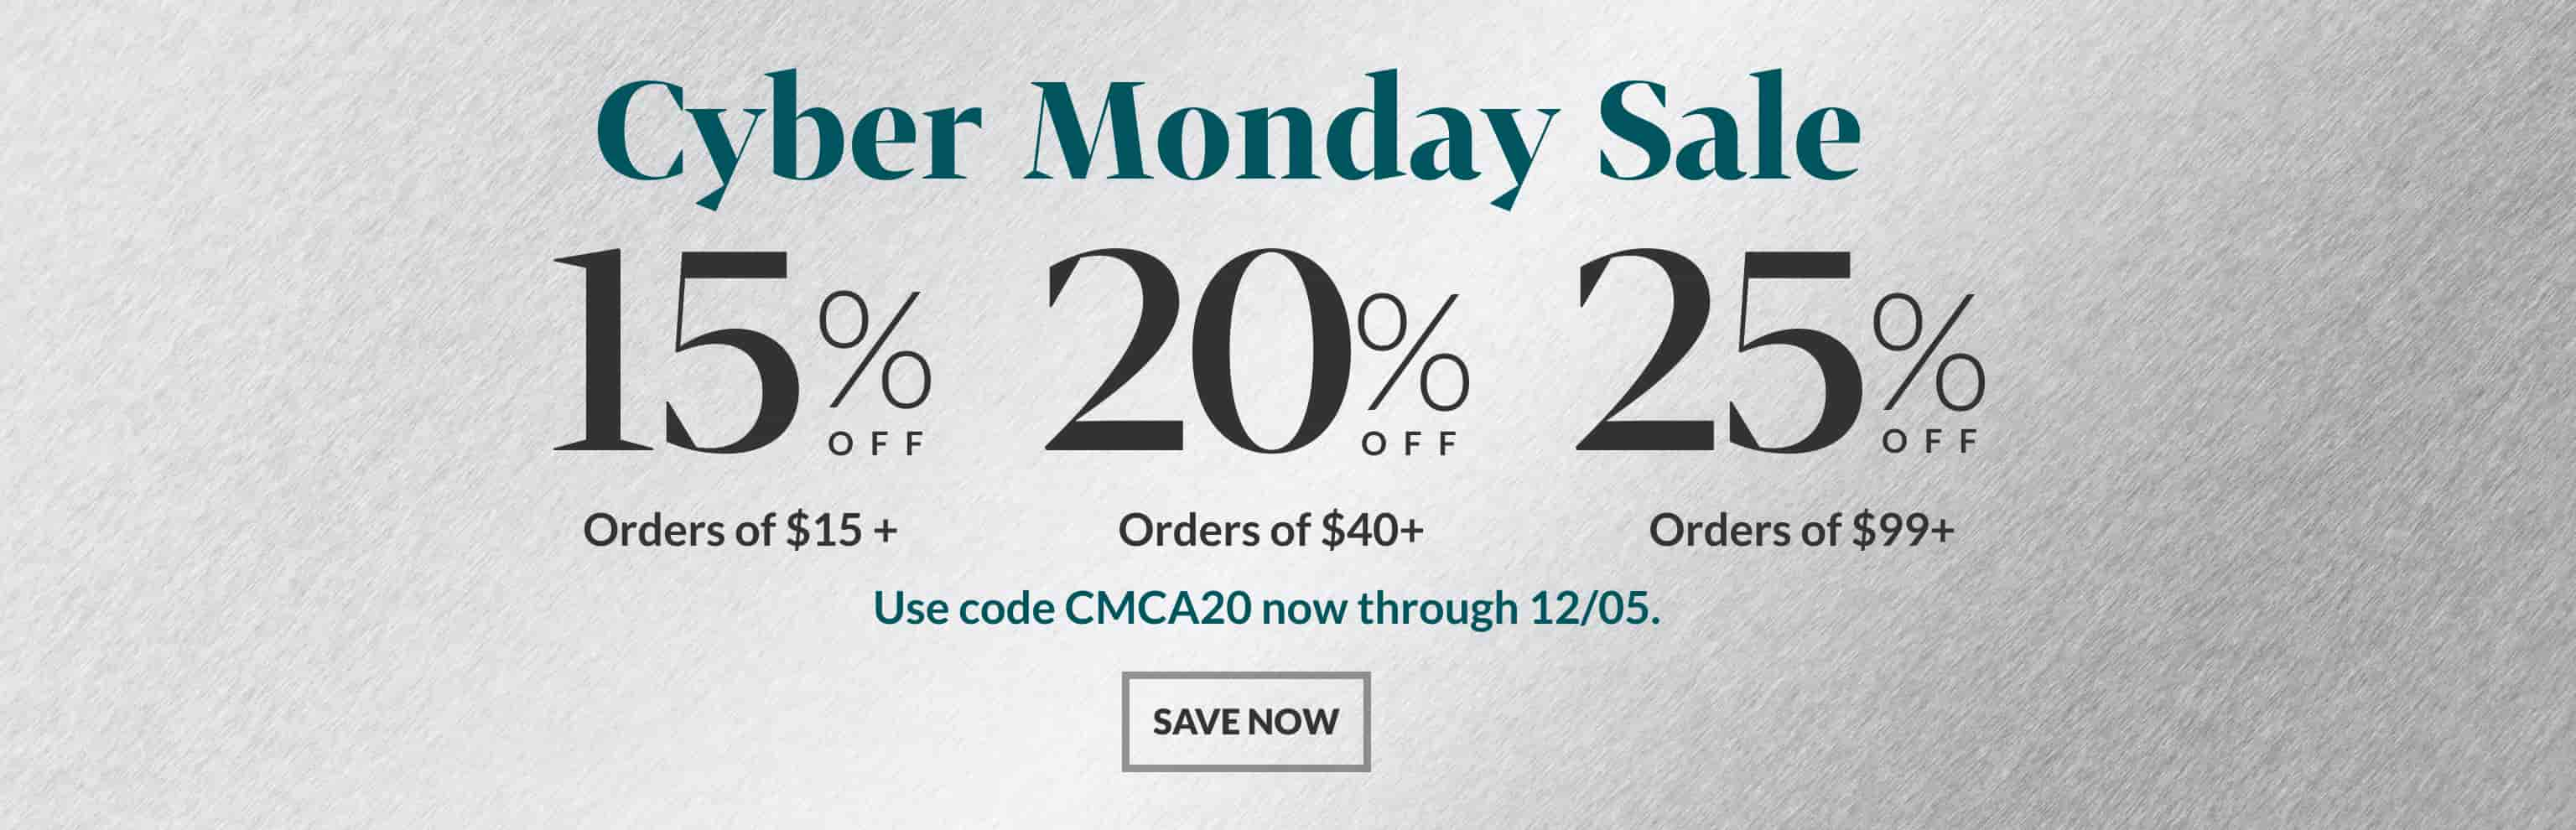 Cyber Monday sale. Use code CMCA20 now through December 5th. Save now. 15% off orders of 15 dollars plus. 20% off orders of 40 dollars plus. 25% off orders of 99 dollars plus. Image of a silver metallic chrome background.